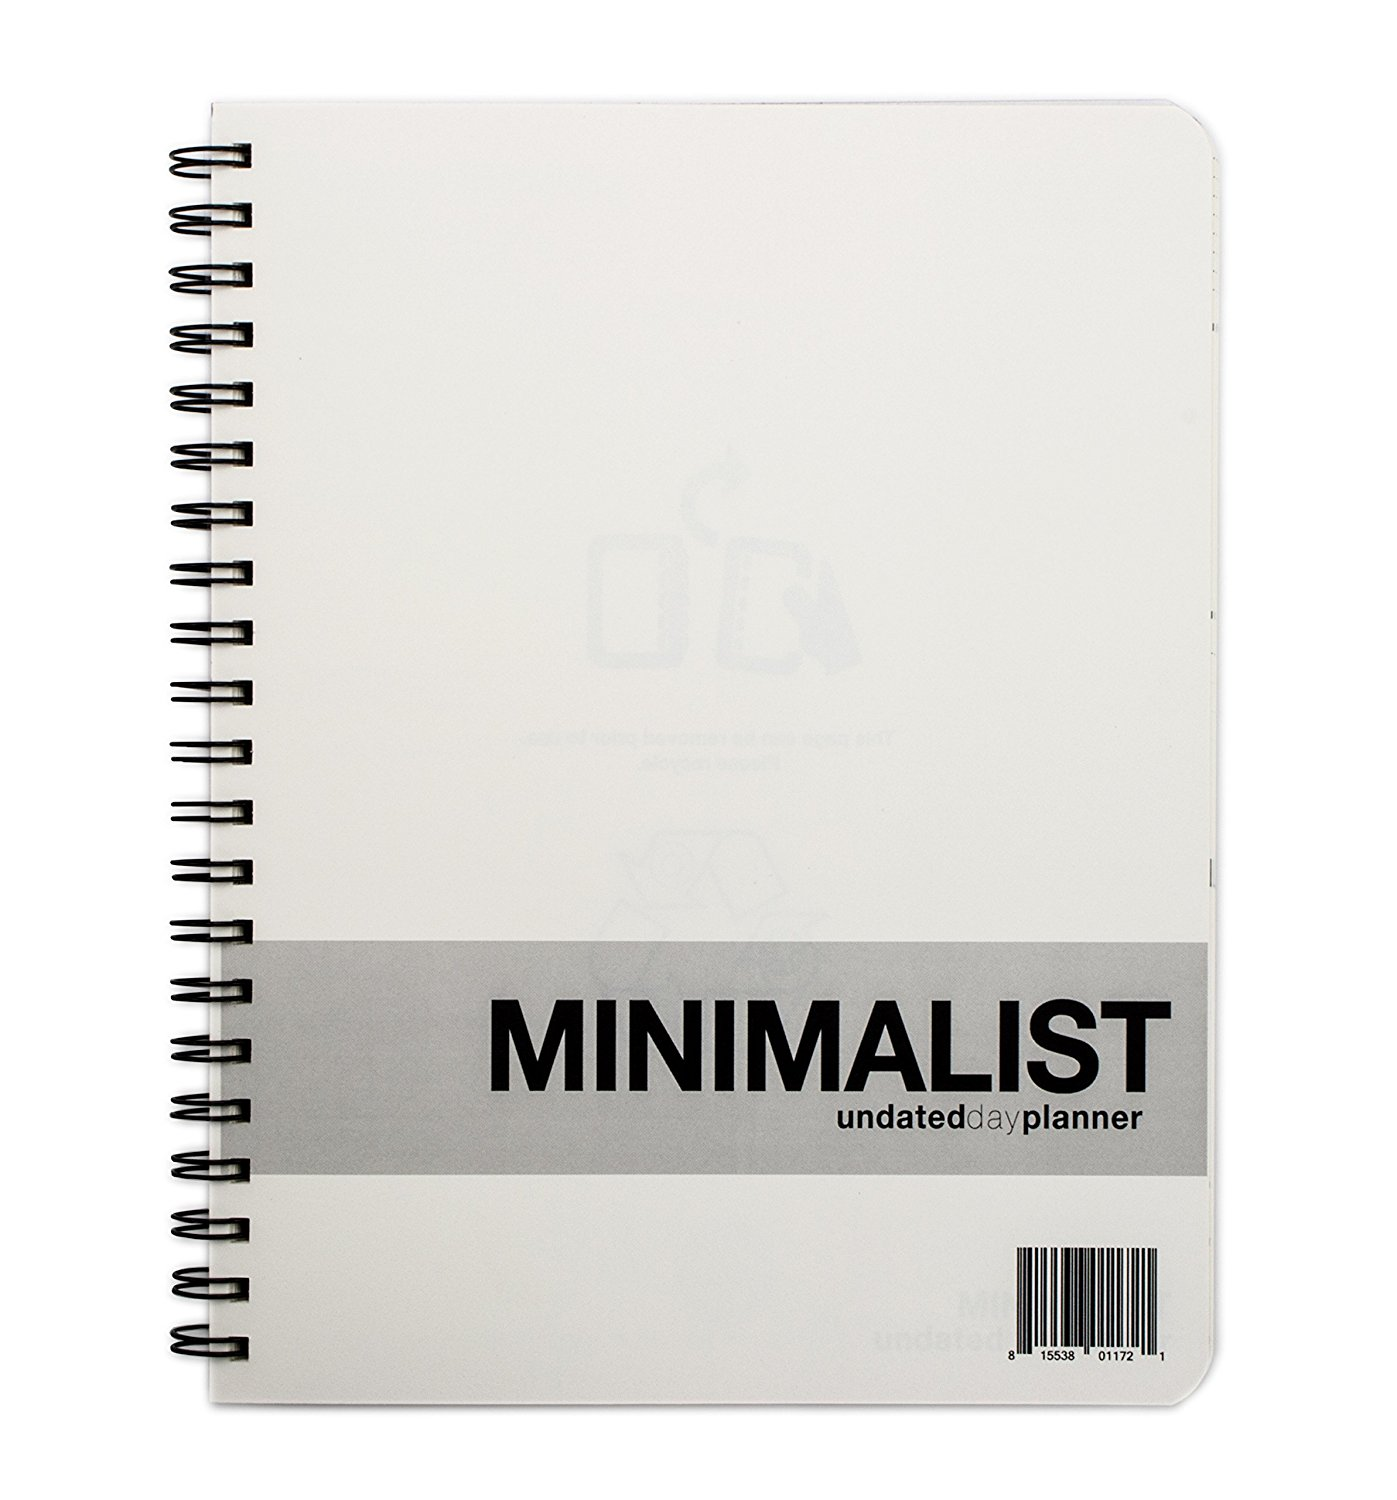 MINIMALIST Undated Large Day Planner